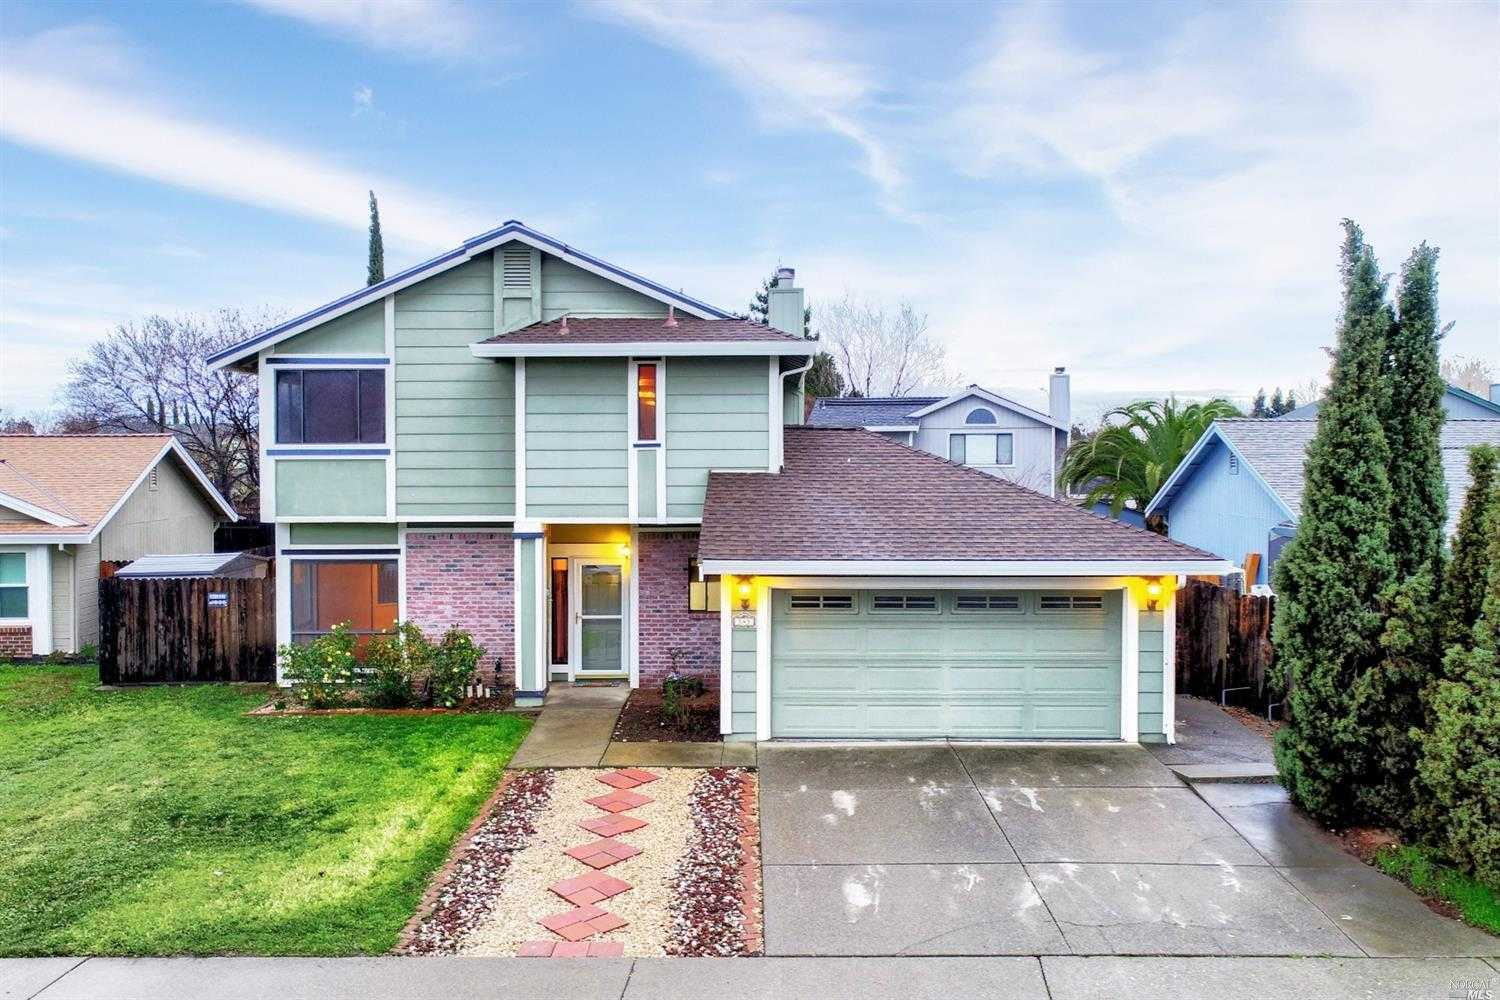 $474,900 - 3Br/3Ba -  for Sale in Vacaville